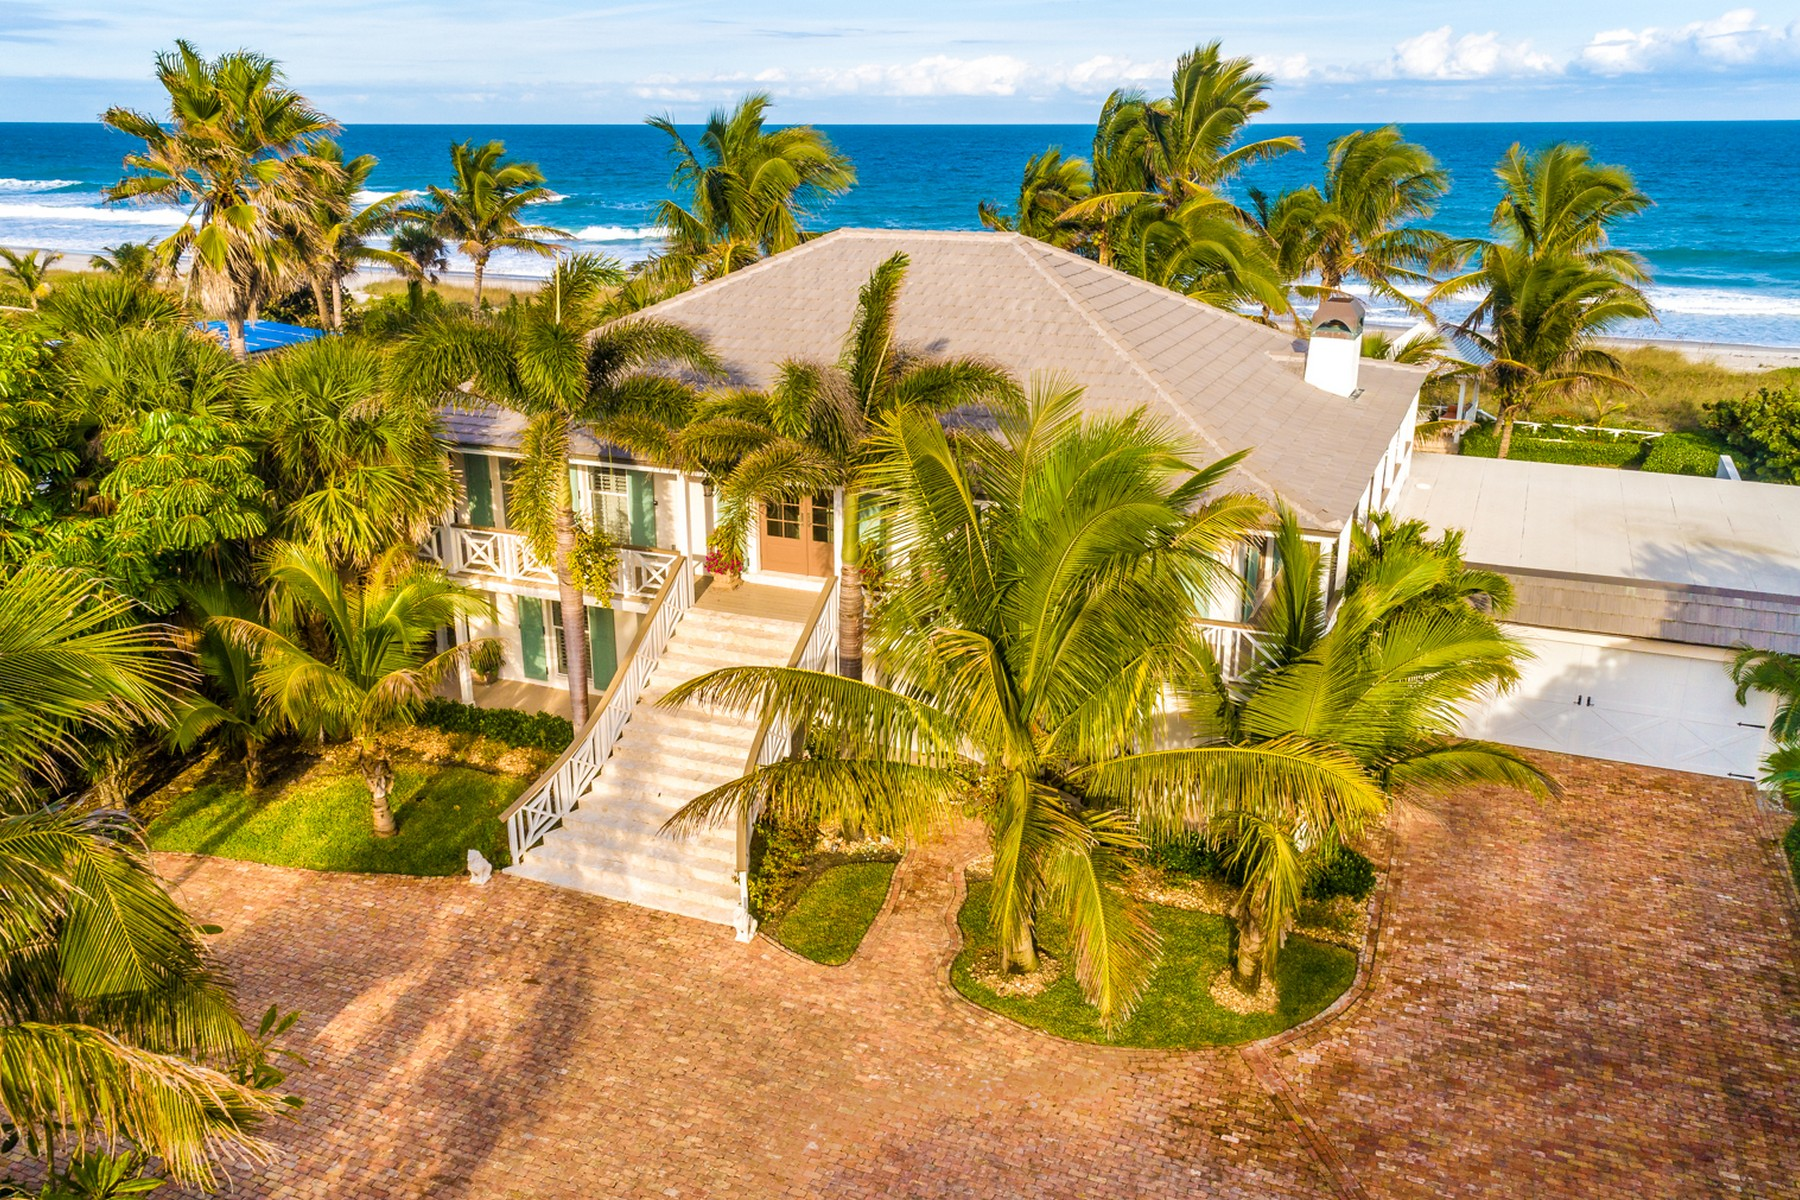 Eensgezinswoning voor Verkoop op Beautiful Oceanfront estate property in rarely available Indialantic by the Sea. 1517 S Miramar Avenue Indialantic, Florida 32903 Verenigde Staten